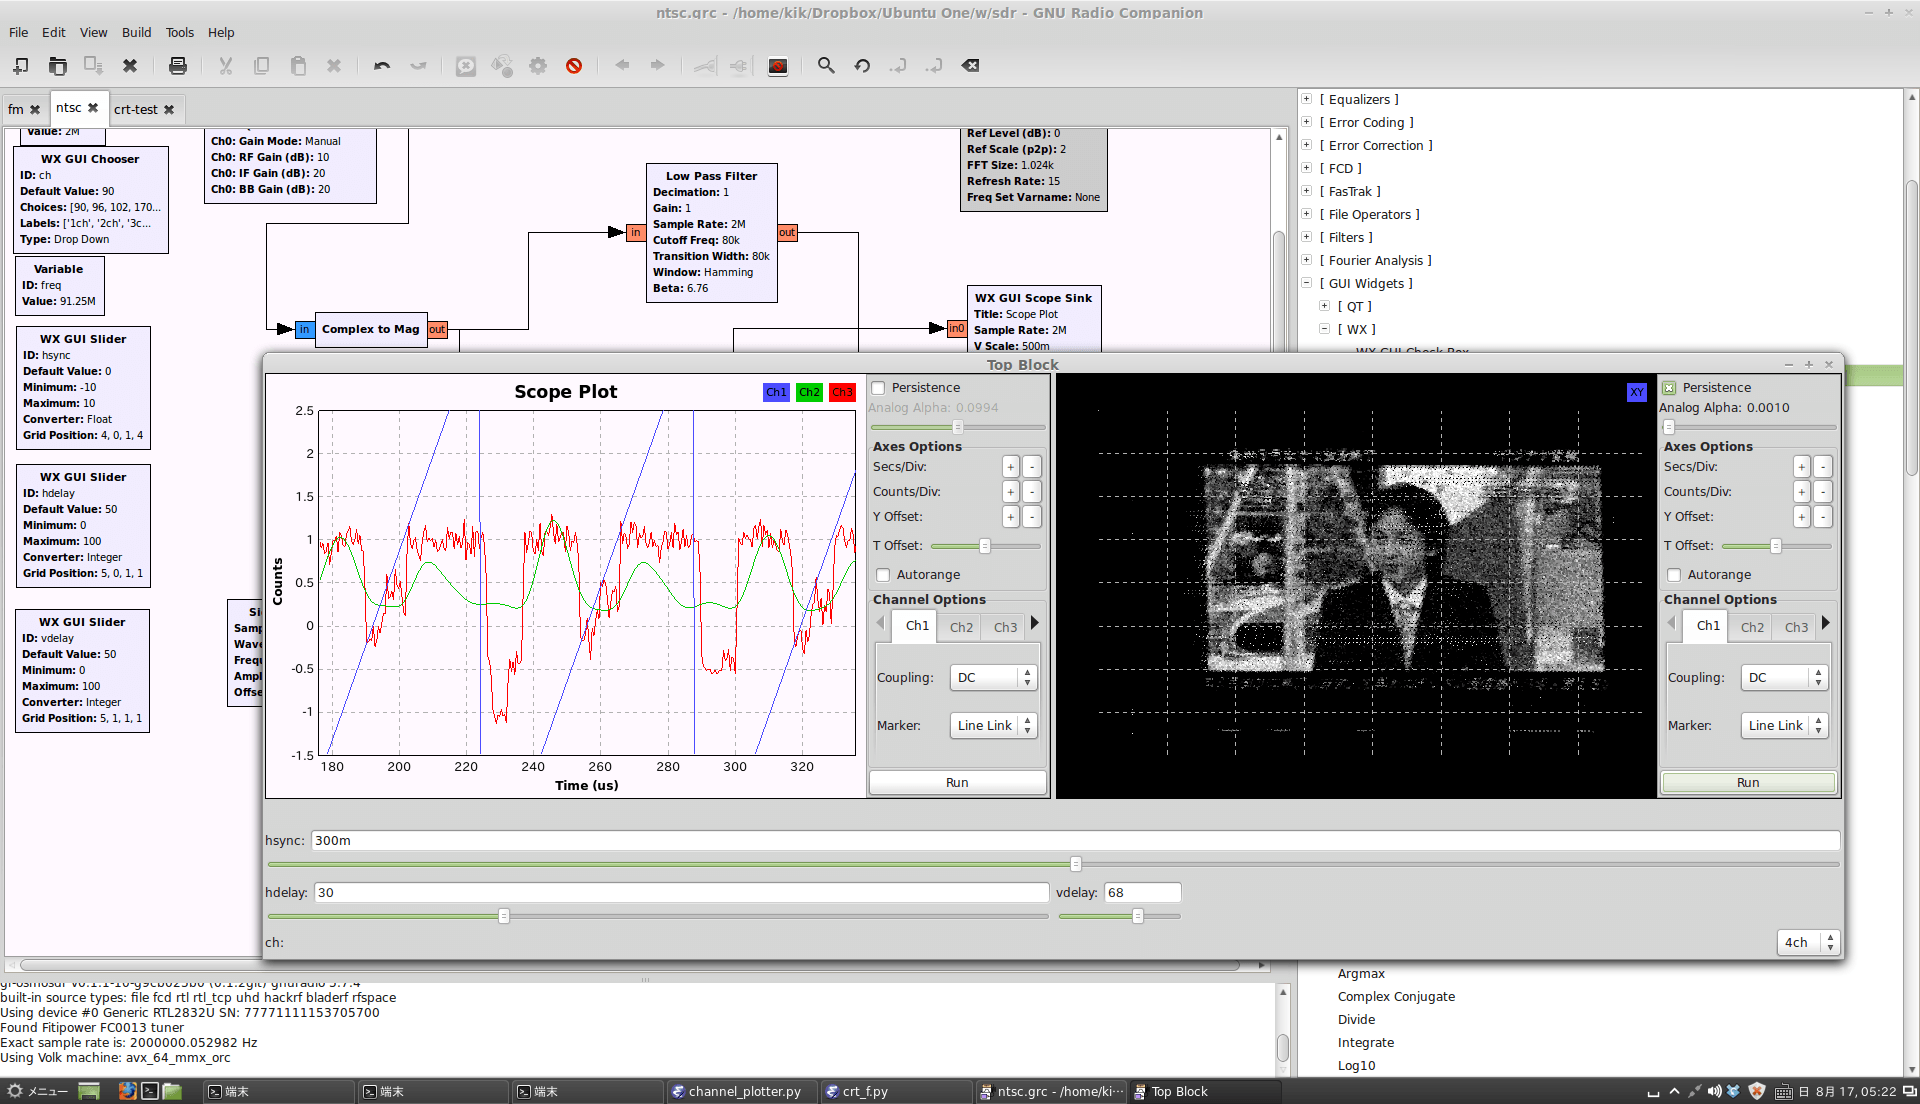 Receiving NTSC Analogue TV with GNU Radio and an RTL-SDR